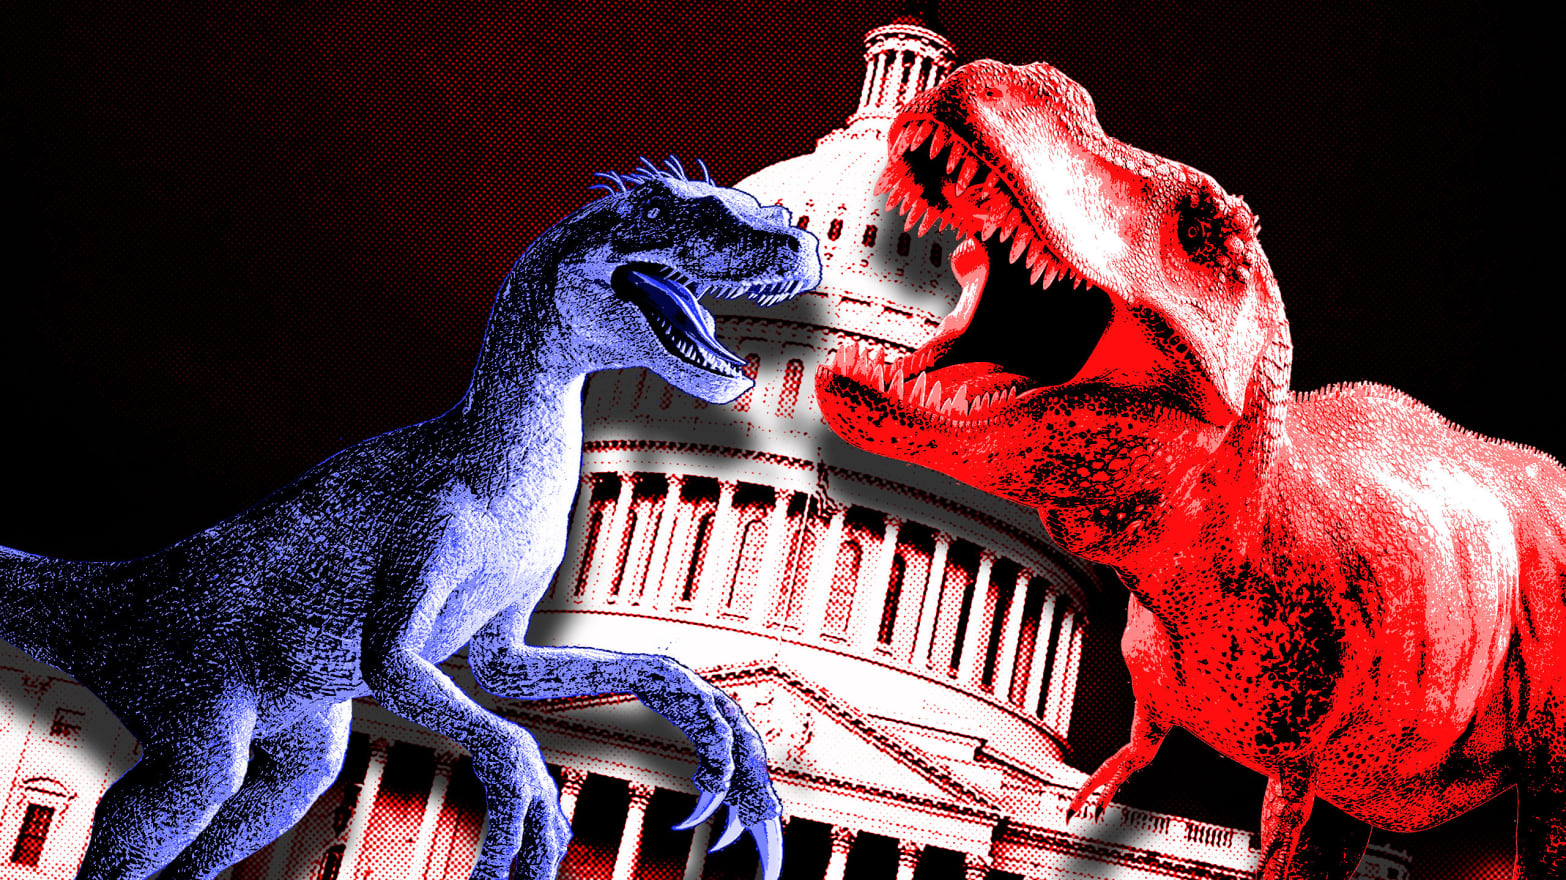 It's Time to Call Out Political Cowards